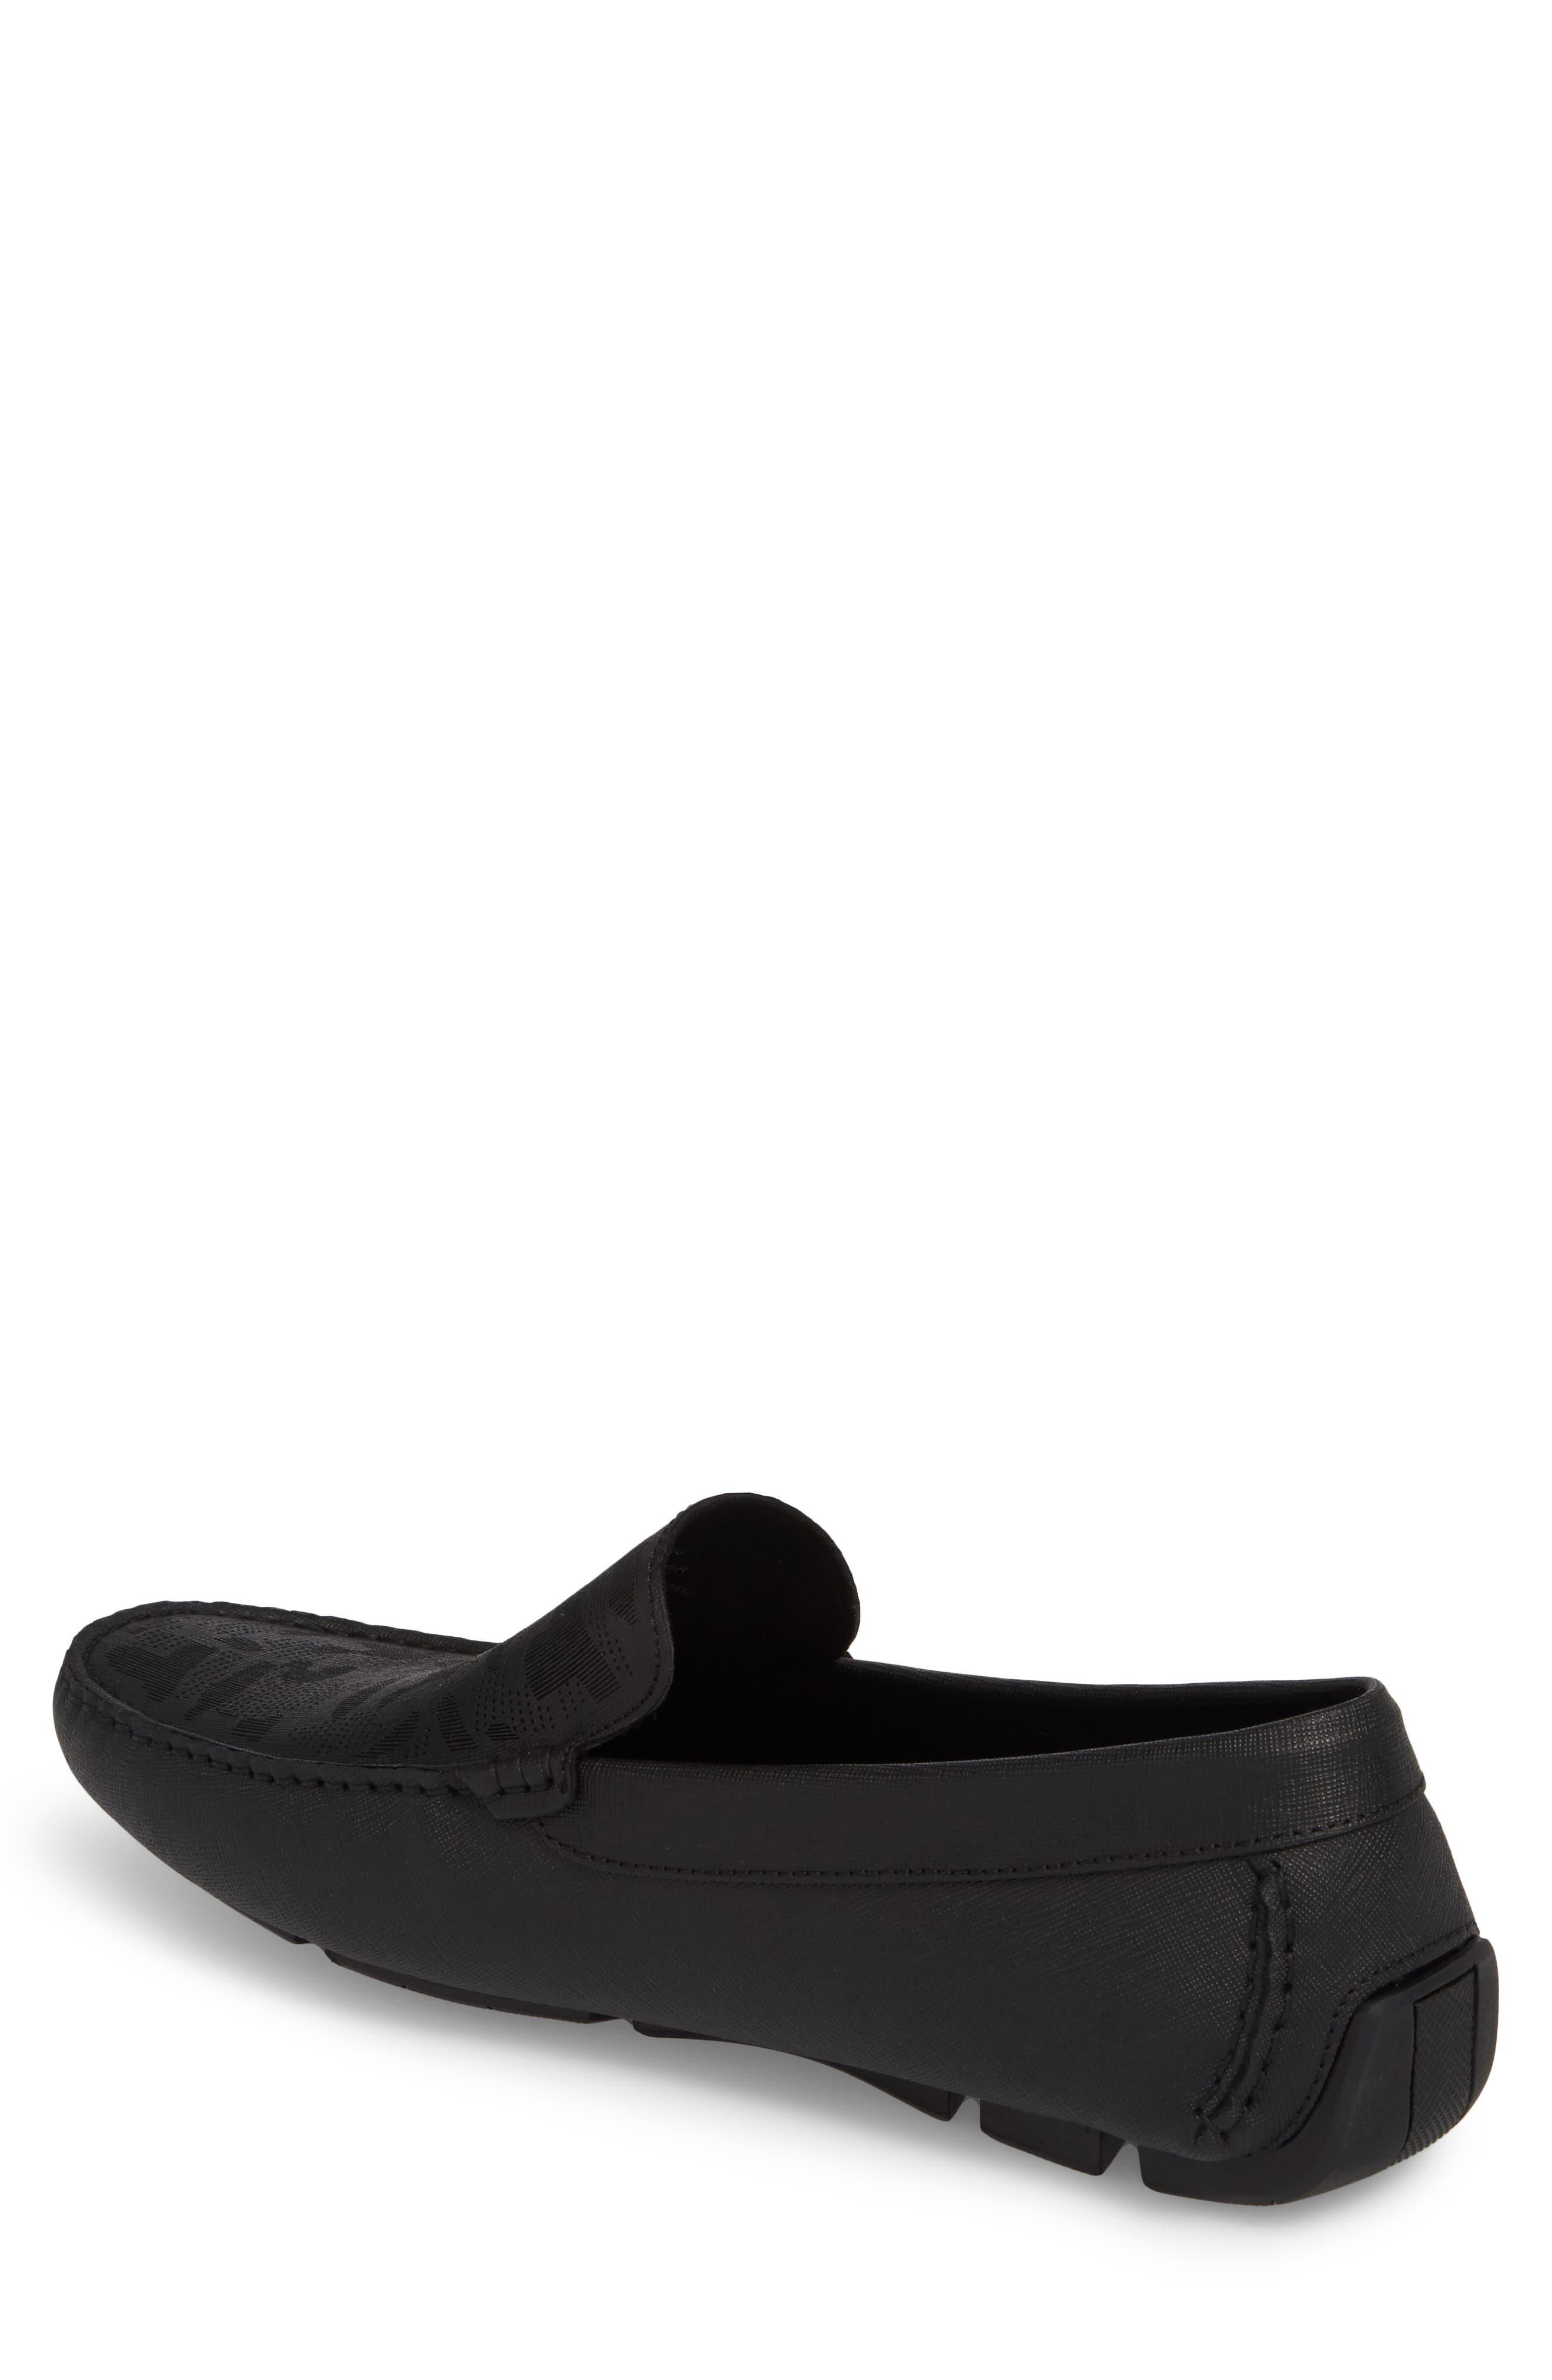 KENNETH COLE NEW YORK,                             Theme Song Driving Shoe,                             Alternate thumbnail 2, color,                             001